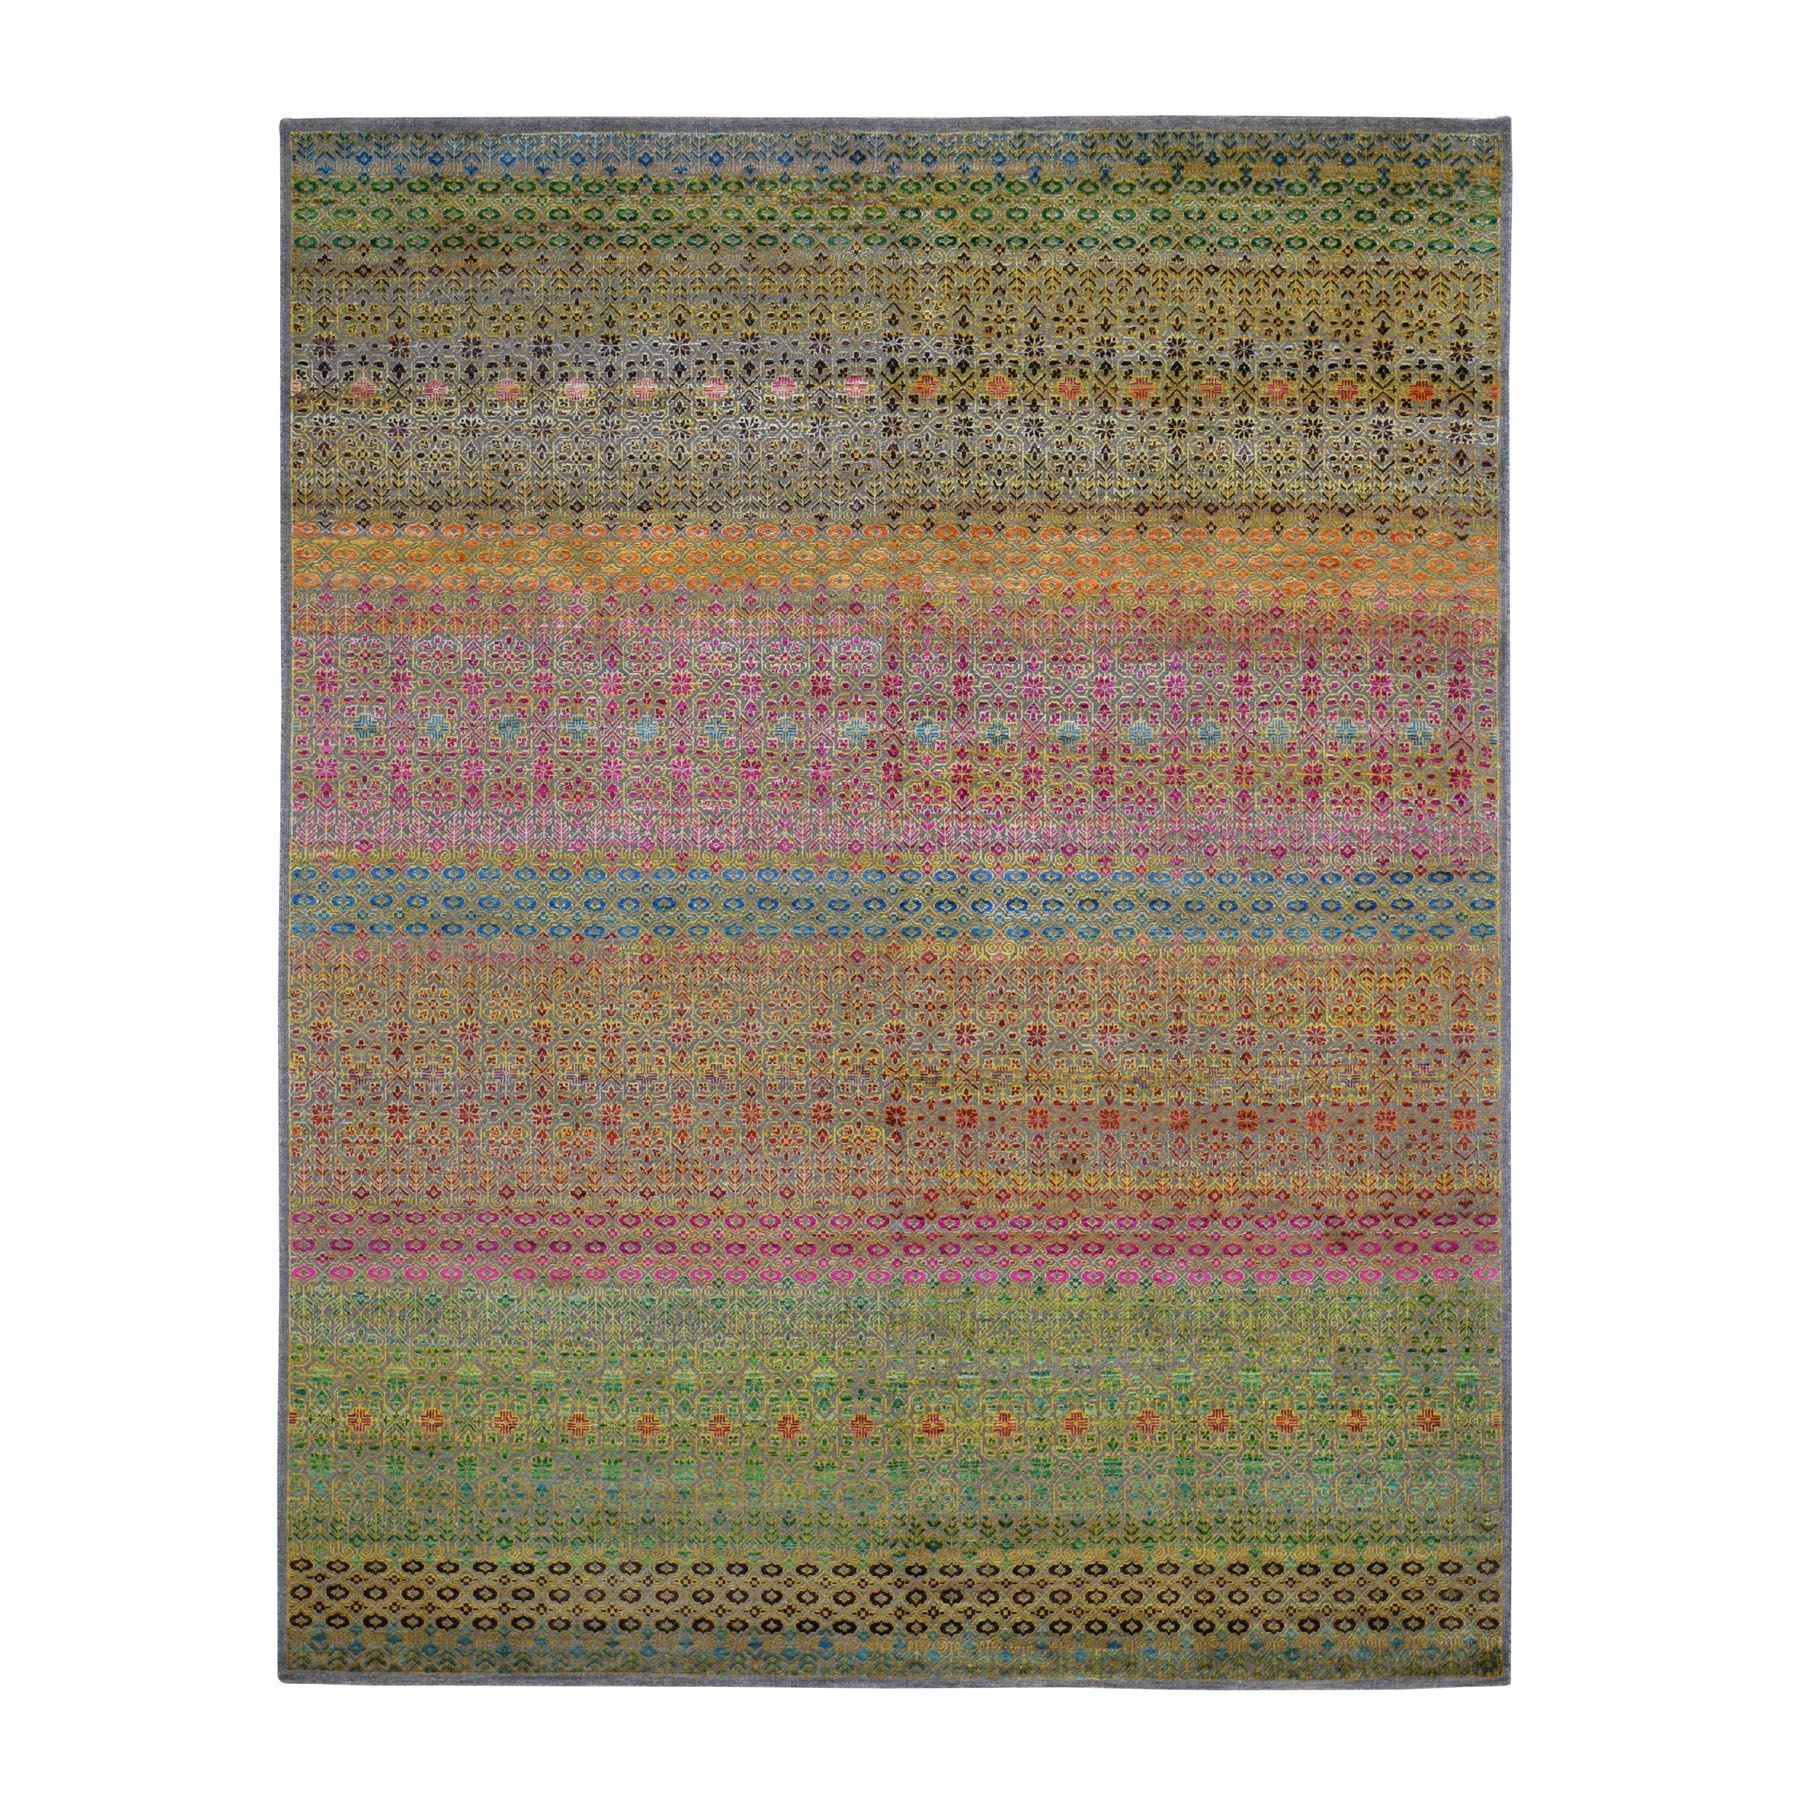 Modern & Contemporary Rugs LUV428202